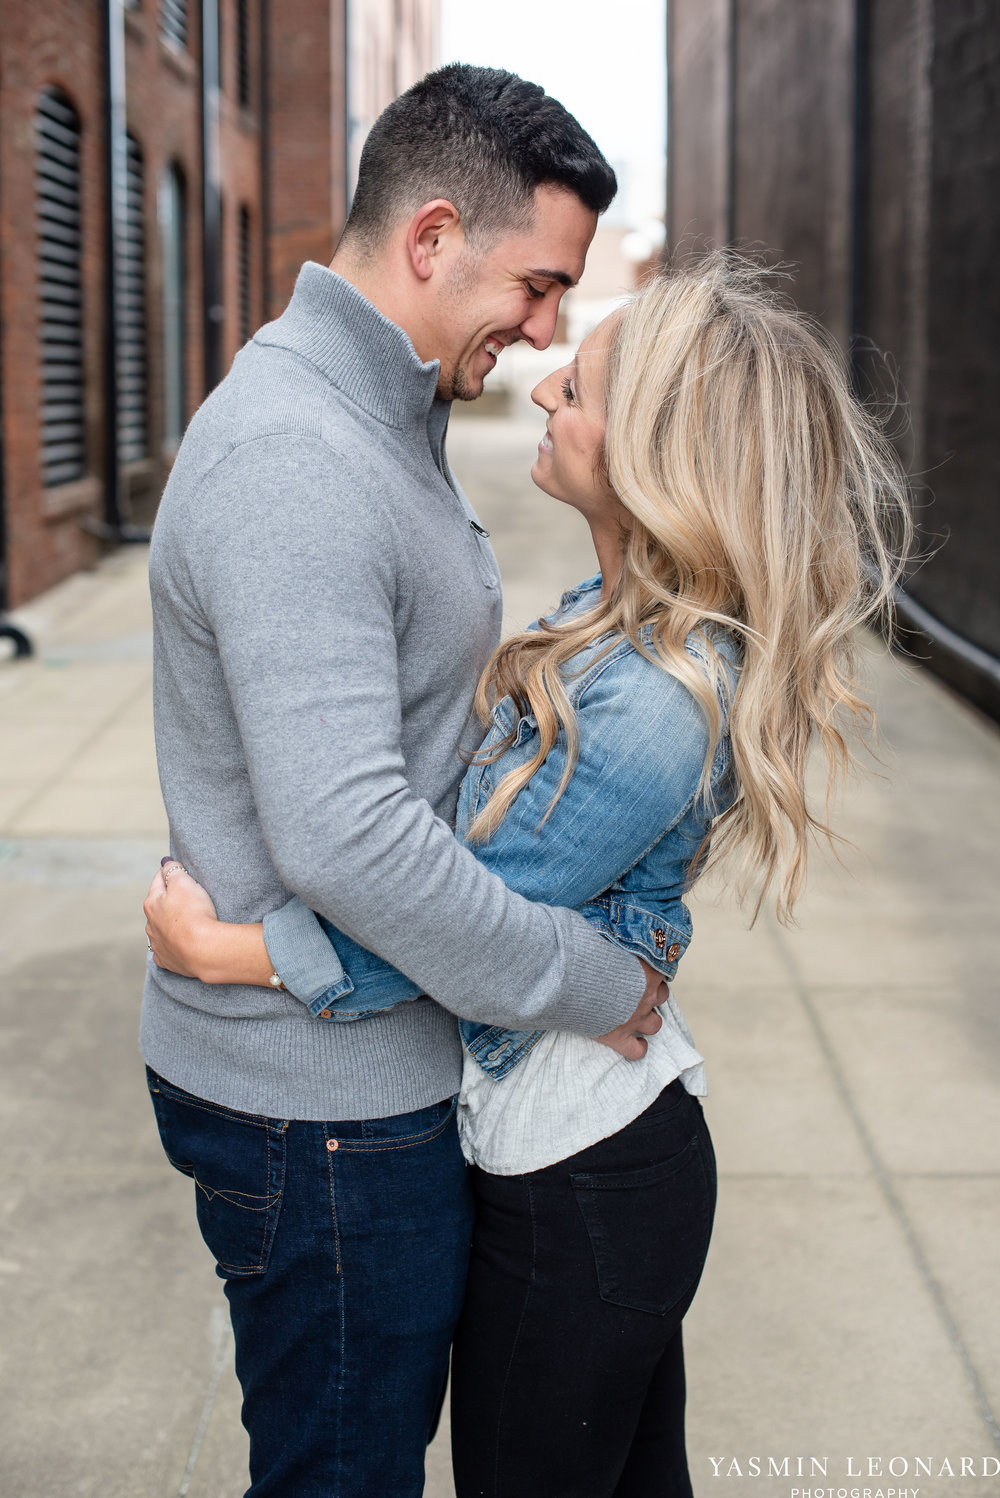 High Point Wedding Photographer - High Point Engagement PIctures - Engagement Session Ideas - Yasmin Leonard Photography - High Point Photographer - NC Wedding Photographer -13.jpg